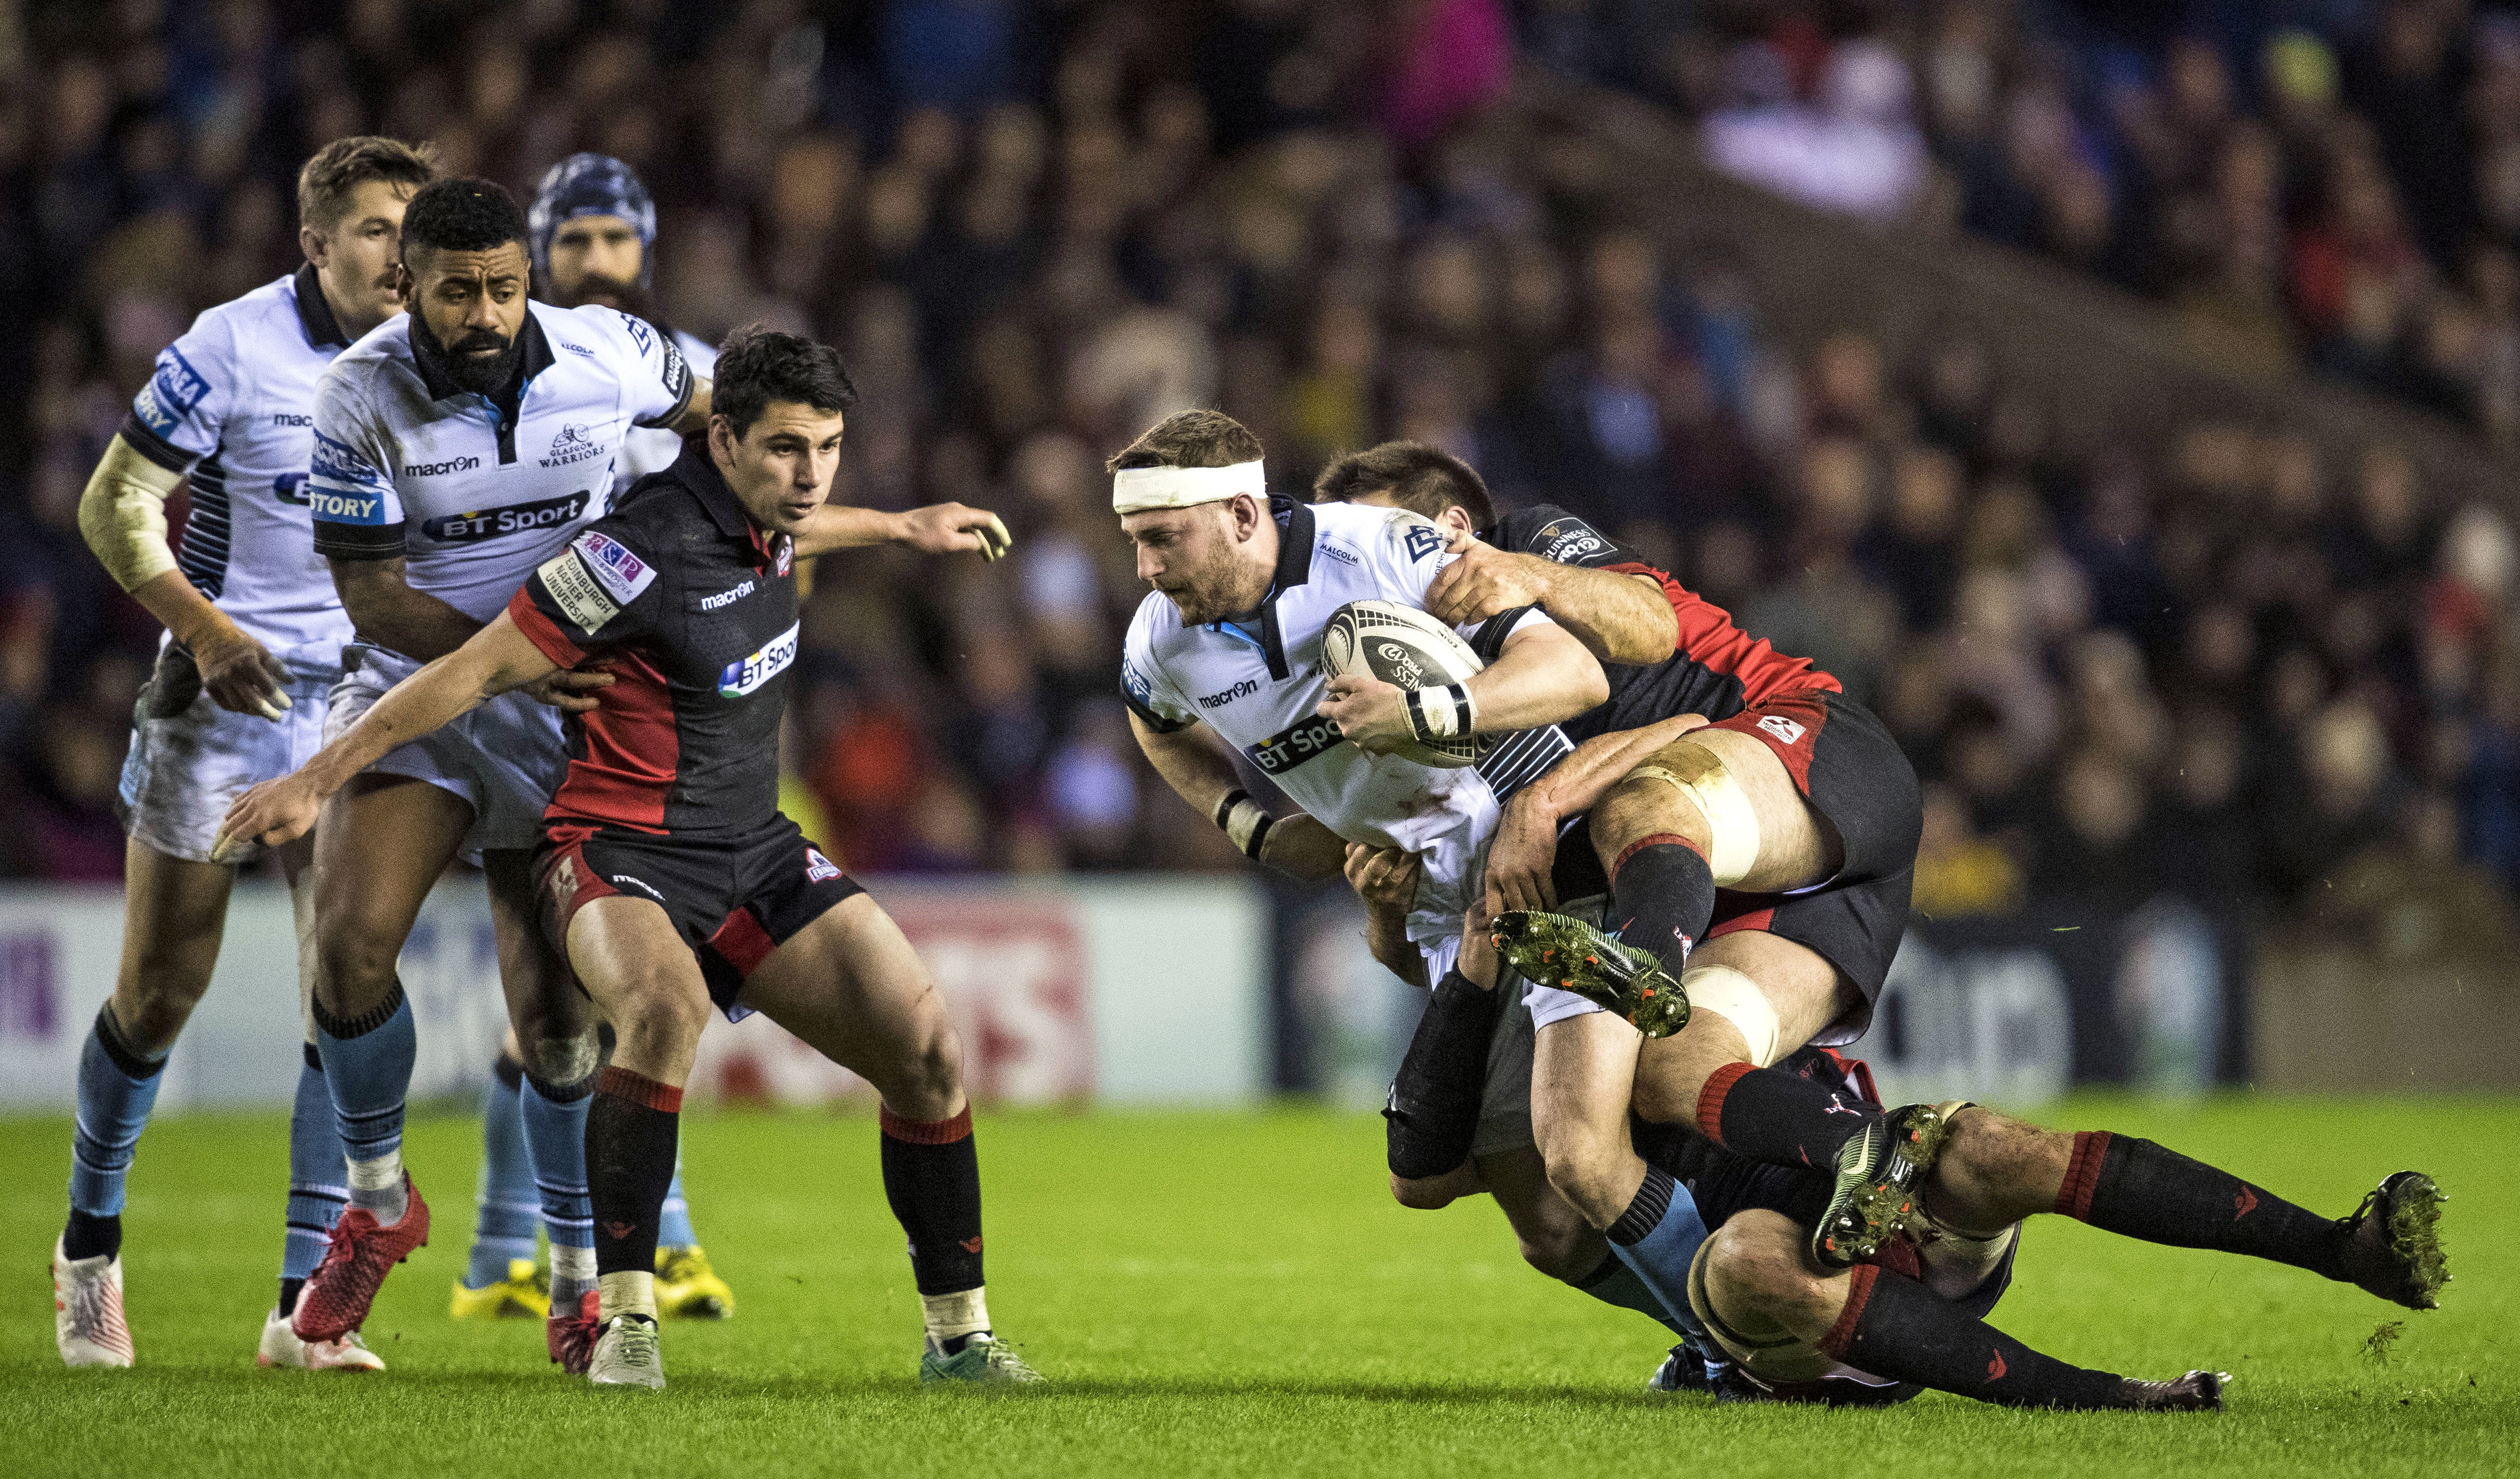 Glasgow Warriors and Edinburgh will play three times a season in the new Guinness PRO14 format.